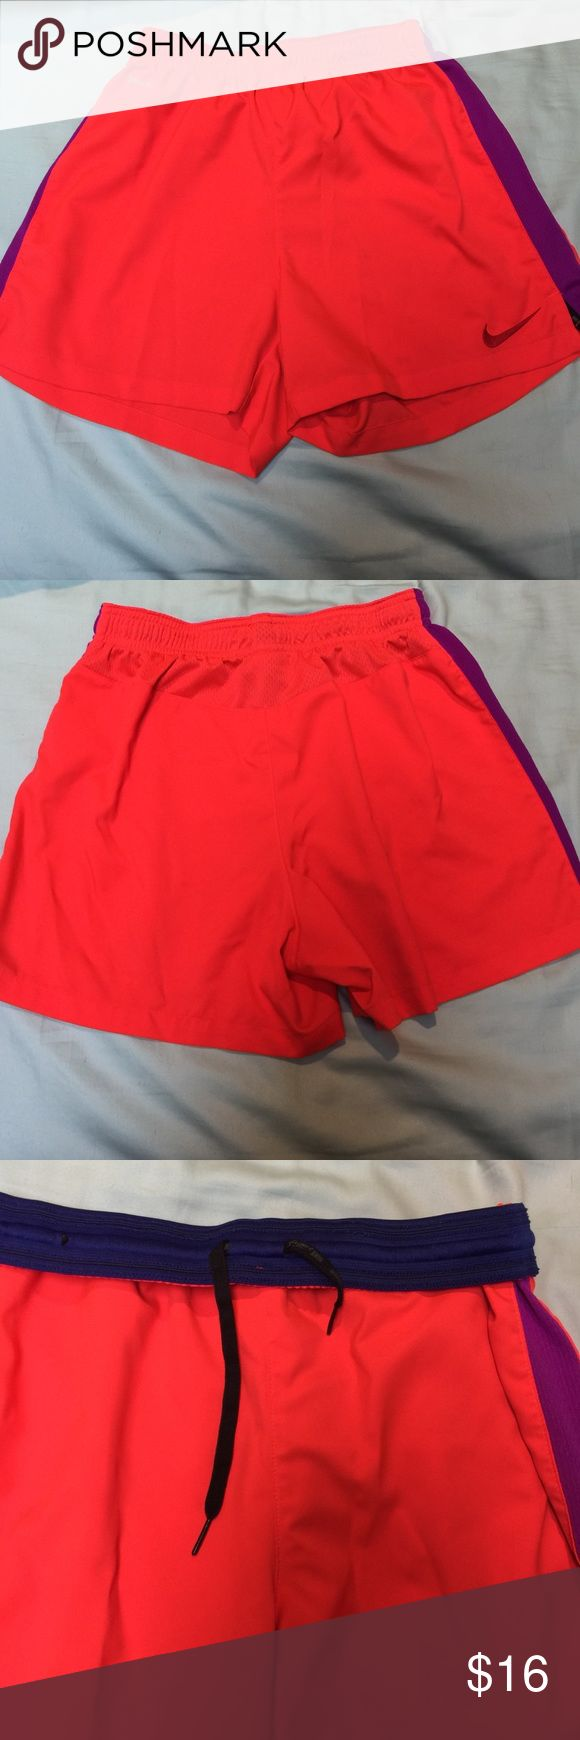 Nike dri fit shorts Size small Nike dri fit shorts 100% poly. Coral color with purple sides. Great condition barely worn Nike Shorts